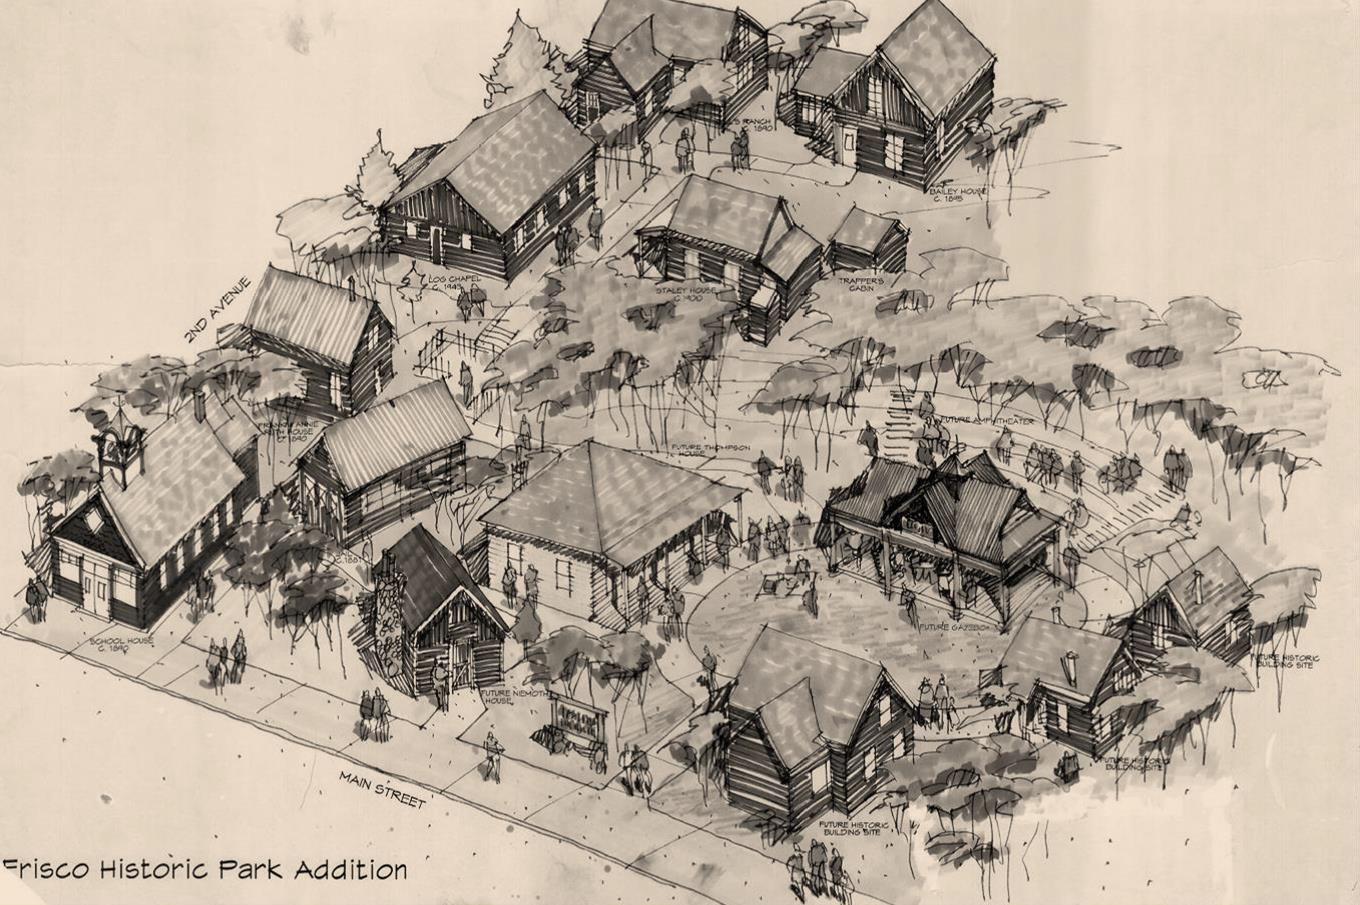 This concept drawing dates to the mid-1980s, as the park was just beginning to develop. One of the biggest differences is the grass covered, open area surrounding the gazebo. Today the Historic Park hosts ten historic cabins and buildings along with an outhouse, a spring house, and the open-air gazebo.